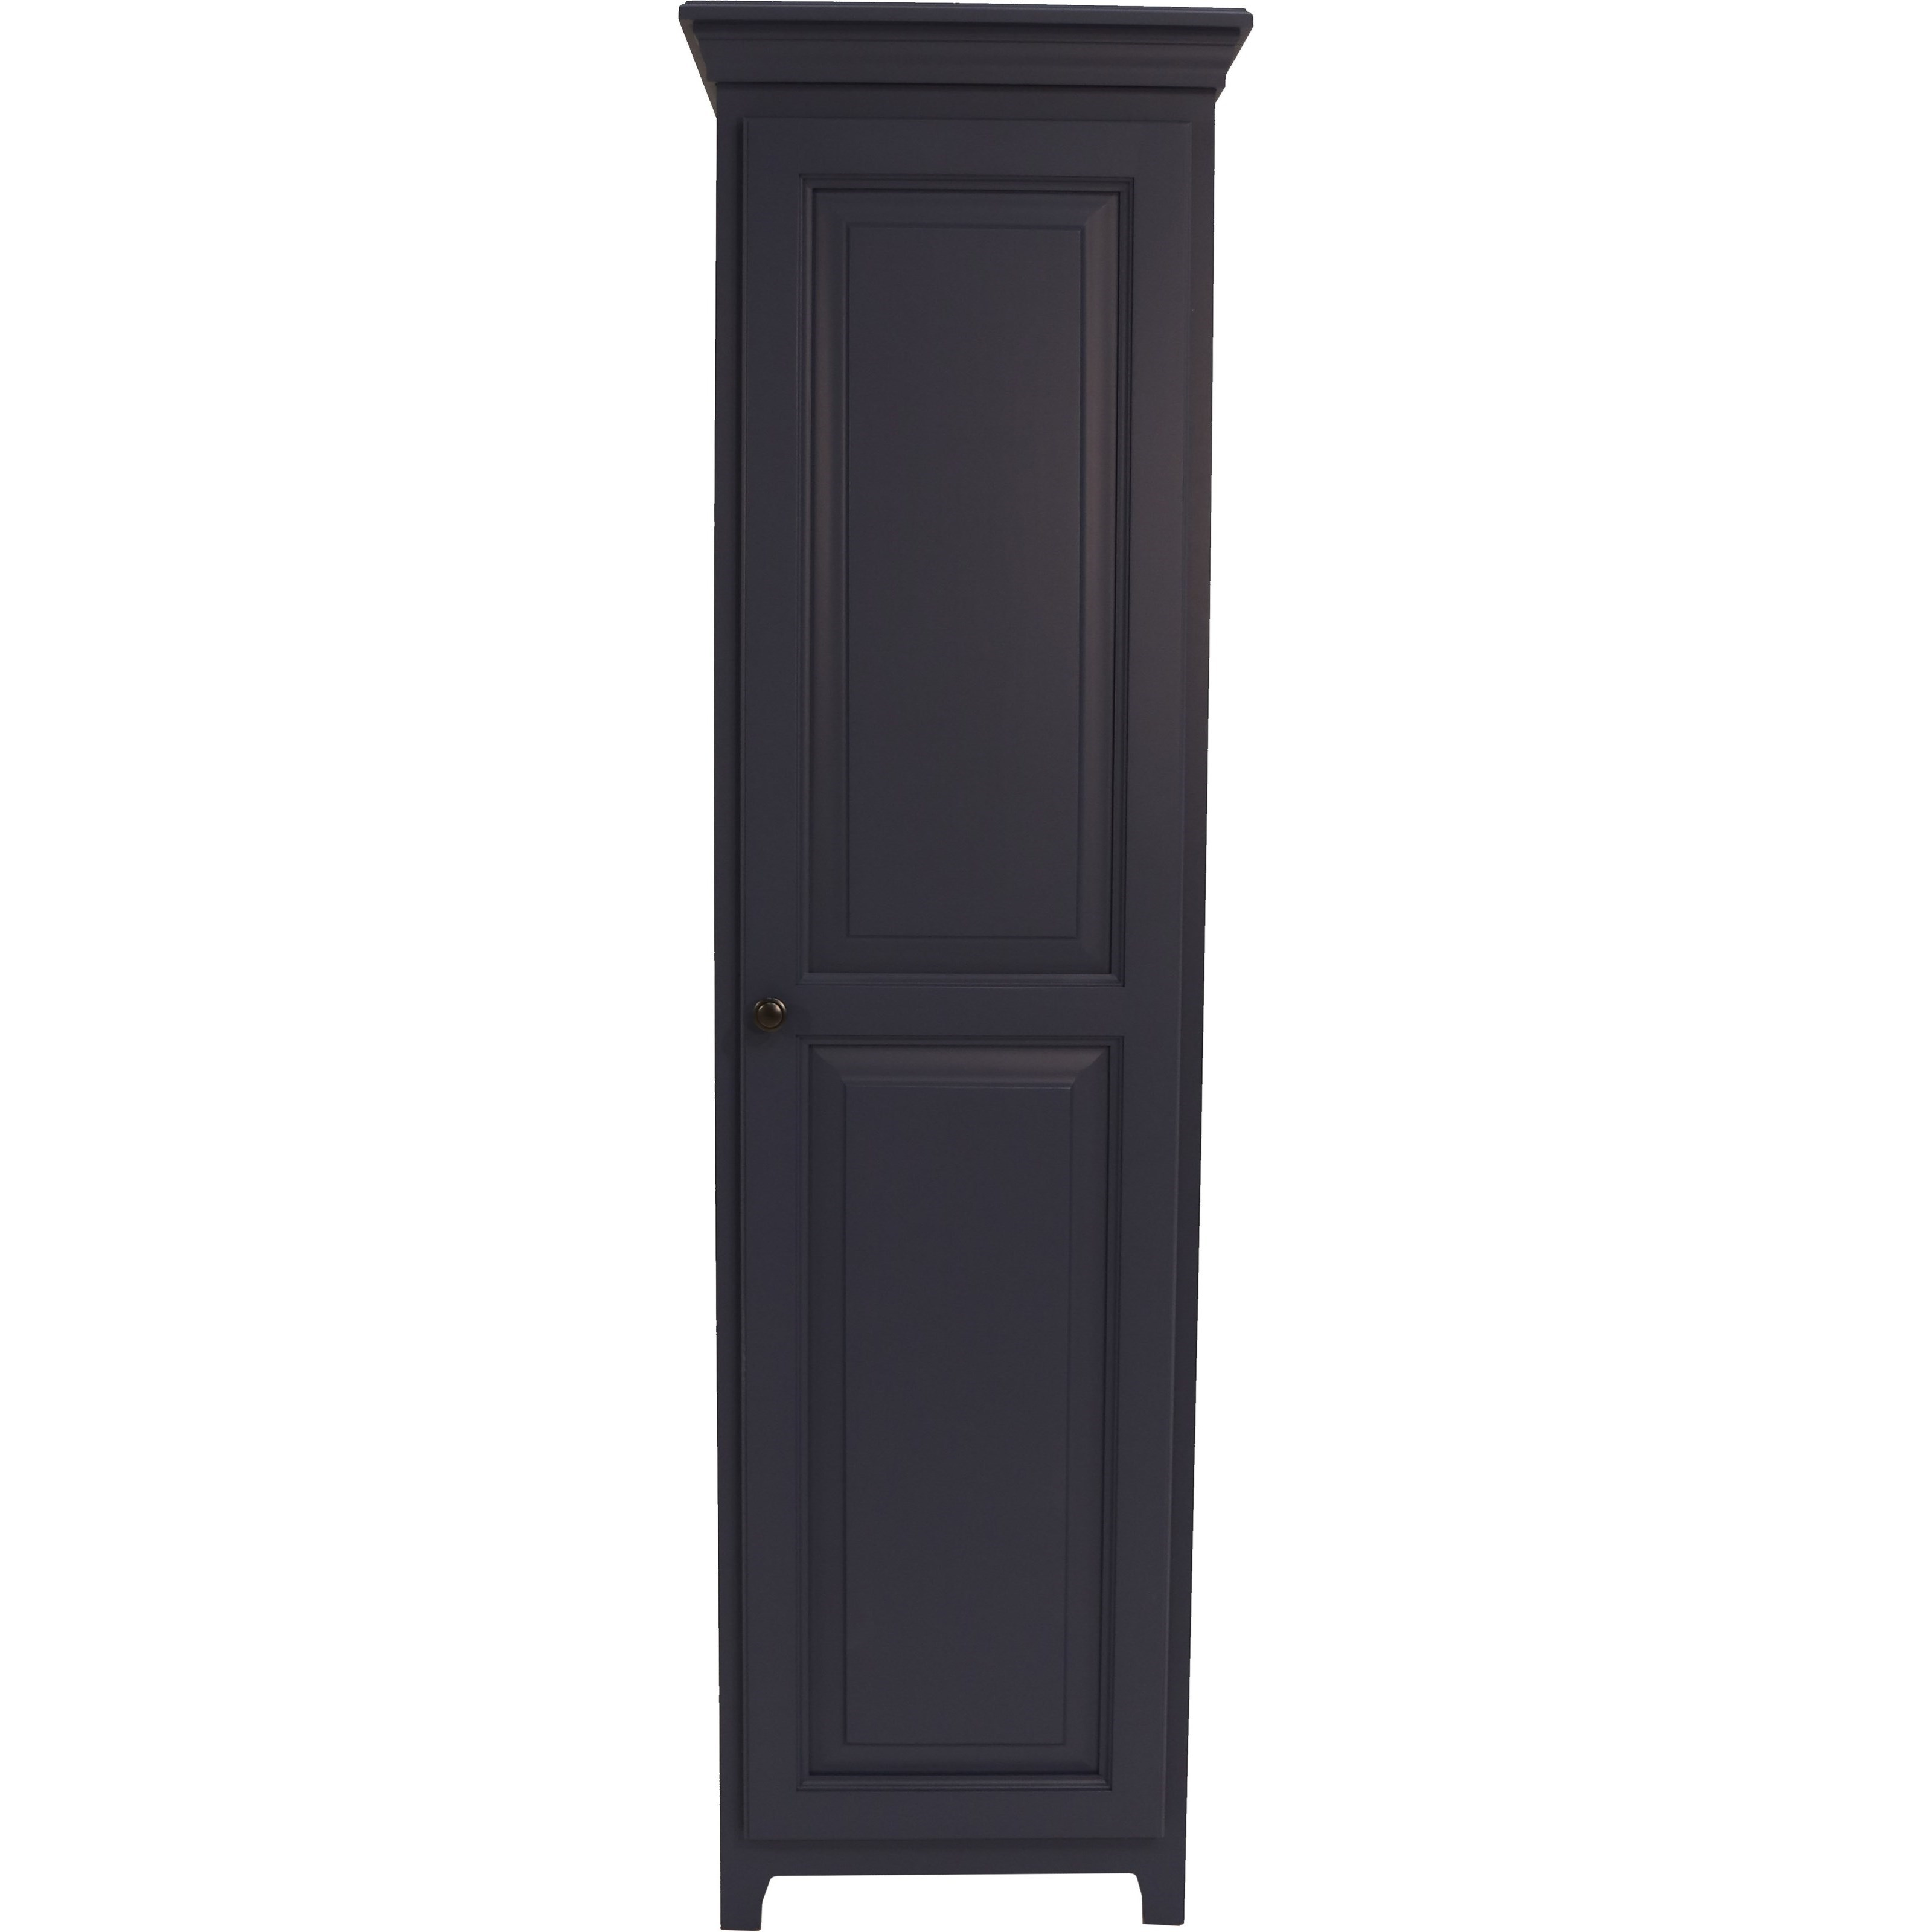 Pantries and Cabinets 1 Door Pantry by Archbold Furniture at Furniture and ApplianceMart